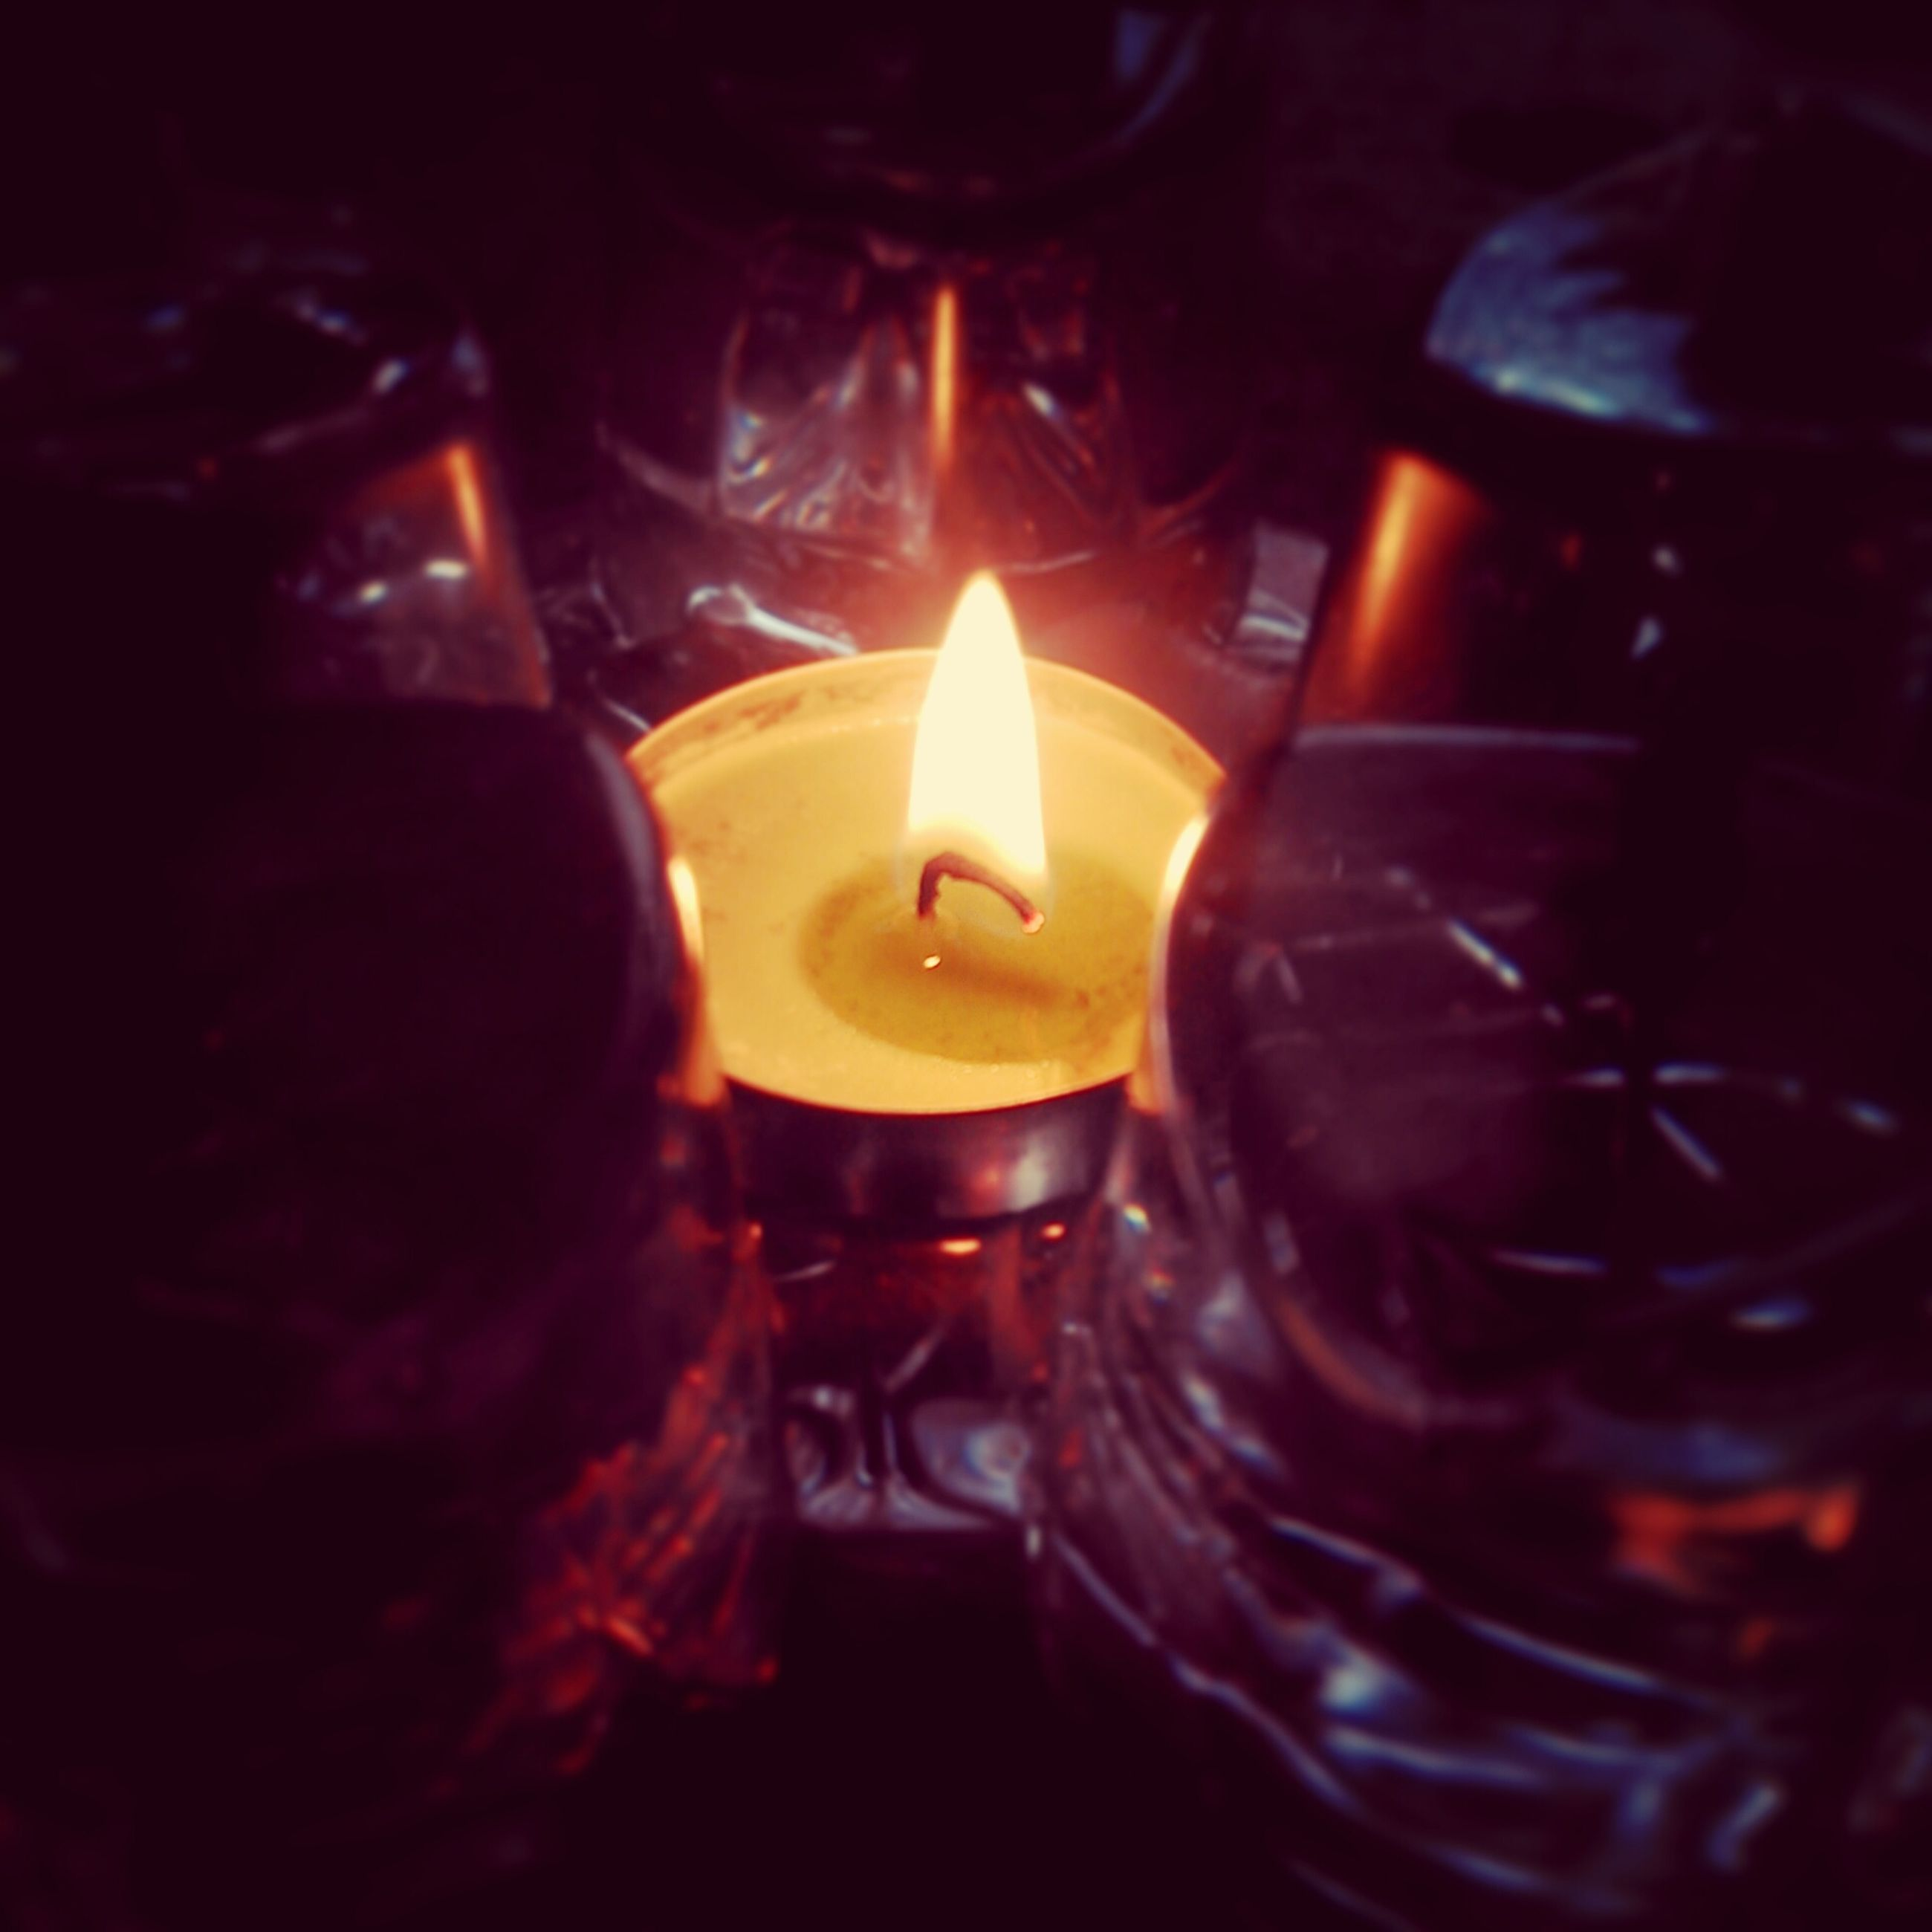 burning, flame, candle, indoors, fire - natural phenomenon, heat - temperature, illuminated, glowing, food and drink, close-up, drink, lit, table, candlelight, drinking glass, still life, refreshment, fire, tea light, alcohol